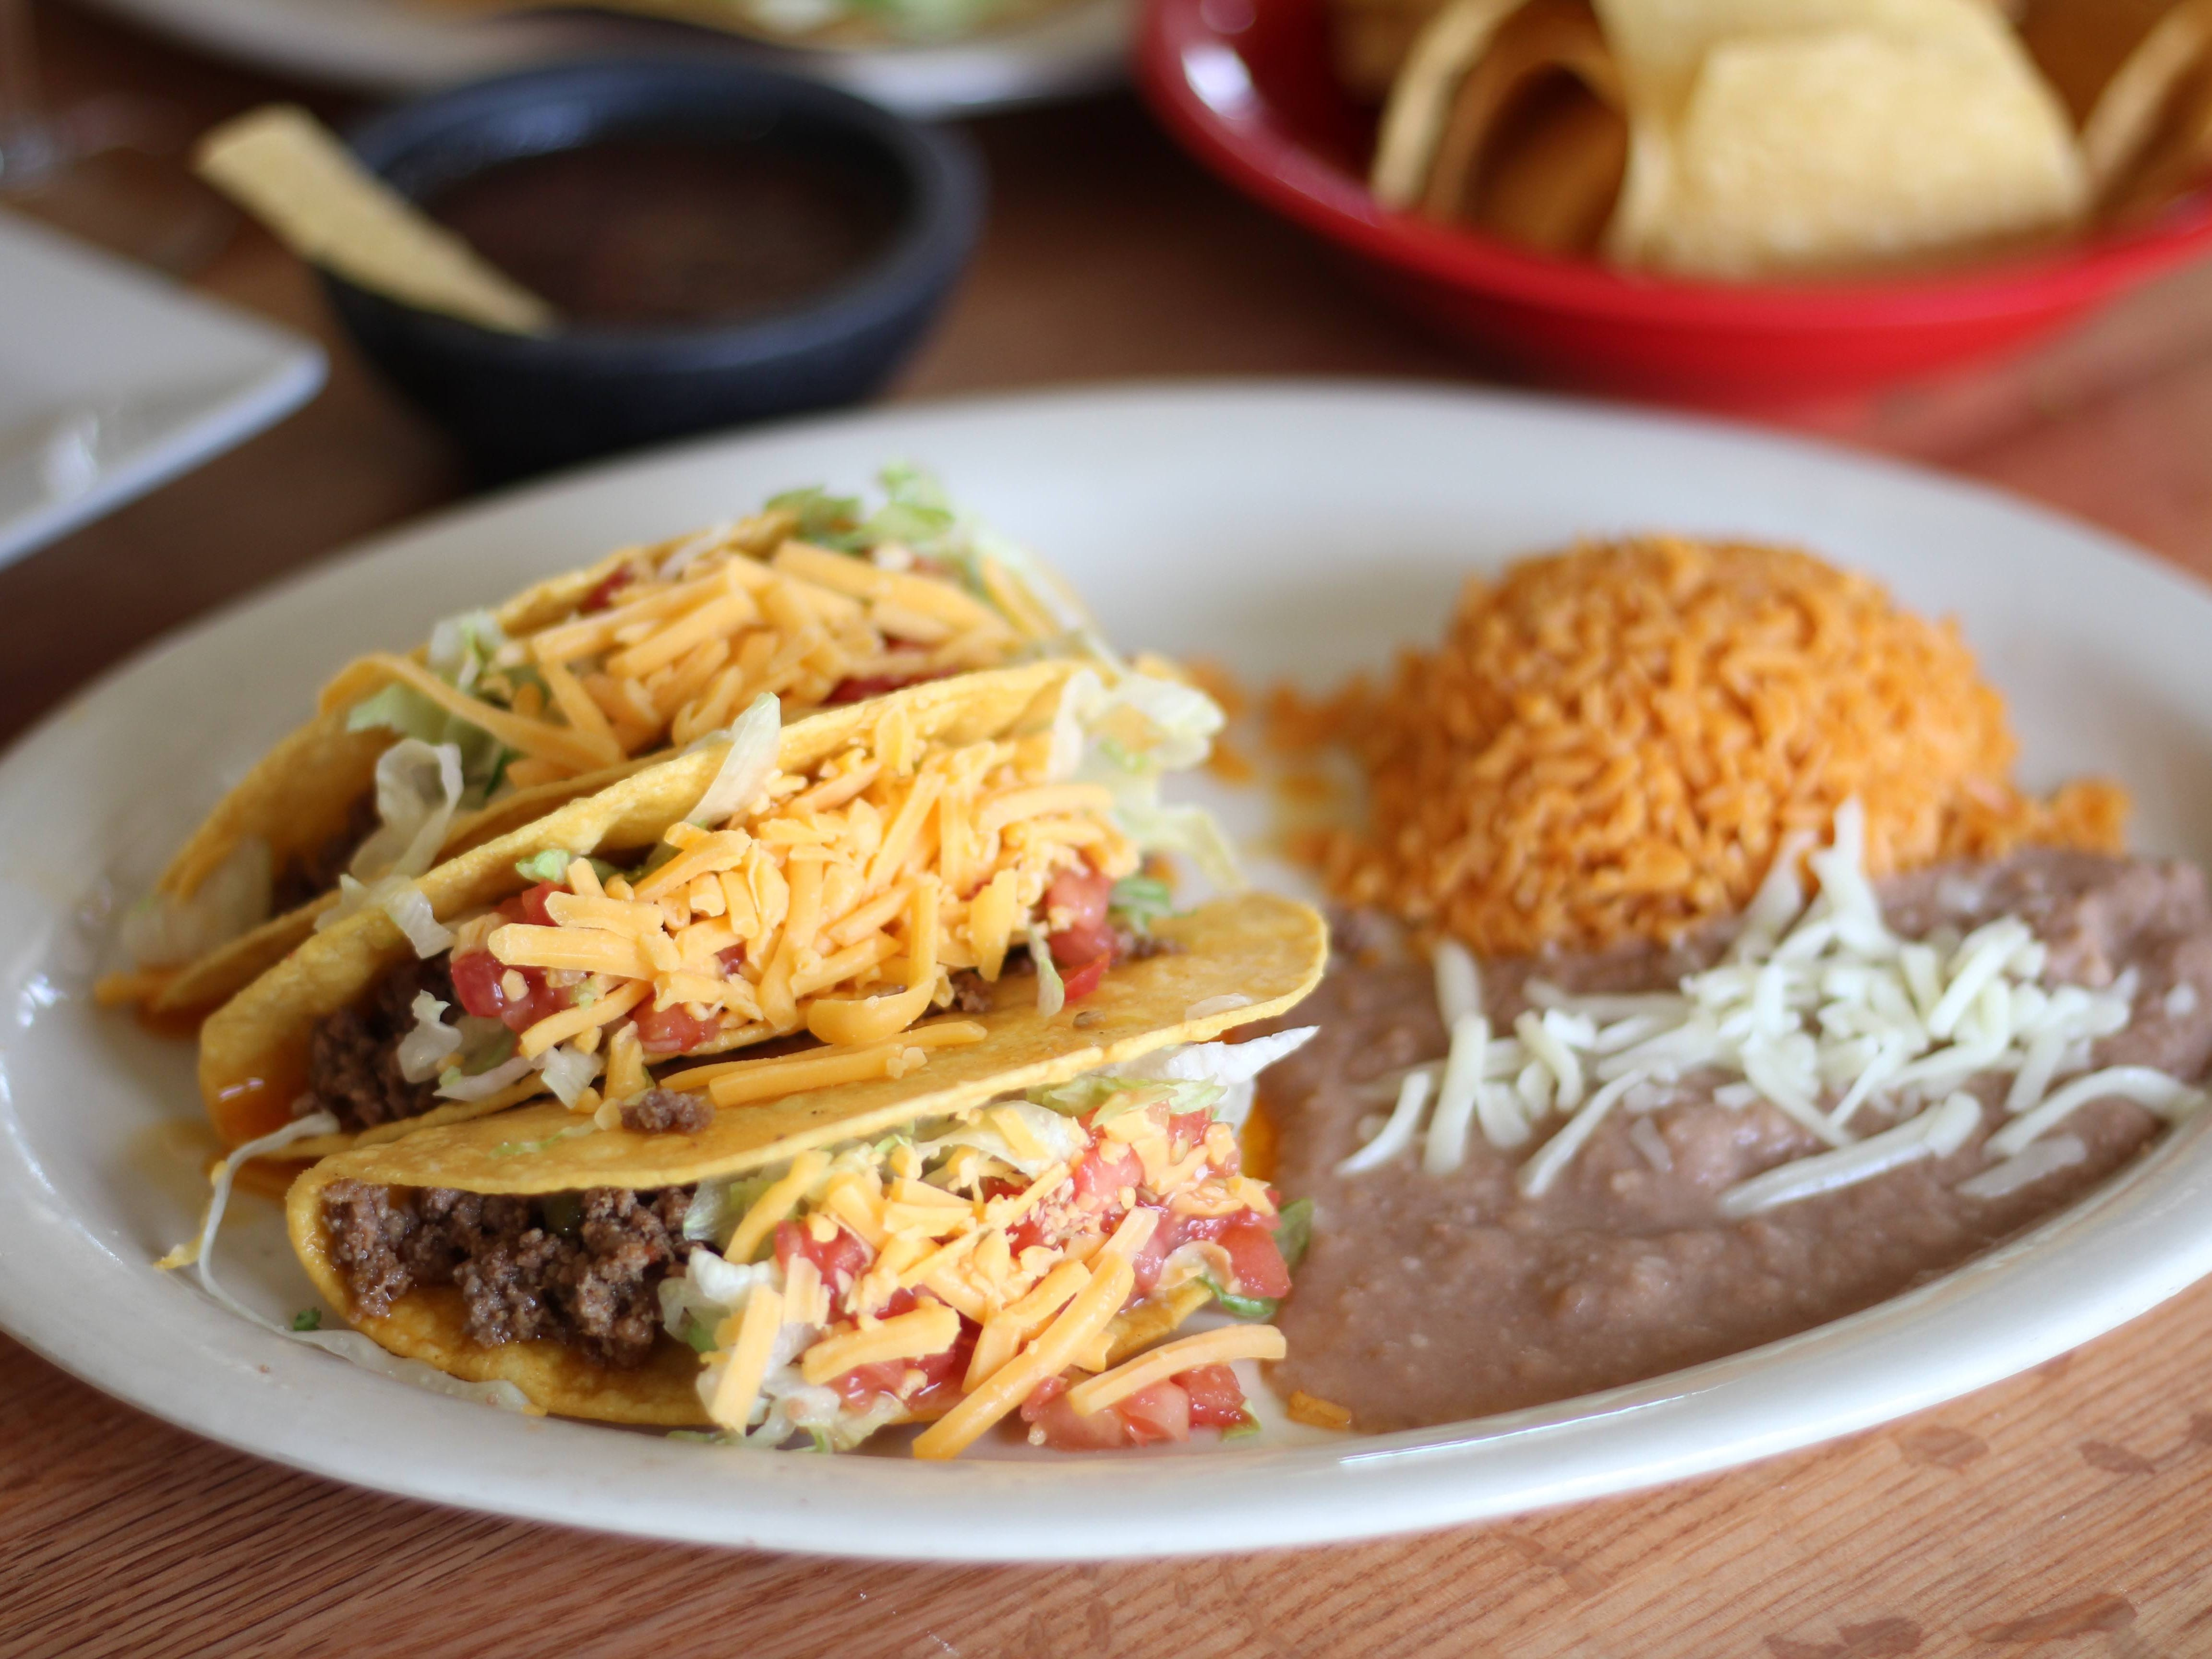 "Forty years ago, if you ordered tacos in a Dallas restaurant, what arrived at the table were three crispy corn shells filled with seasoned ground beef, shredded iceberg lettuce, chopped tomatoes and ribbons of an orange-yellow cheese that was more often Velveeta than cheddar. Pinto beans ""refried"" in lard and a scoop of Mexican-spiced rice usually showed up for the ride. El Rincon wasn't around 40 years ago, but they seem to have captured the era's simple Tex-Mex spirit."